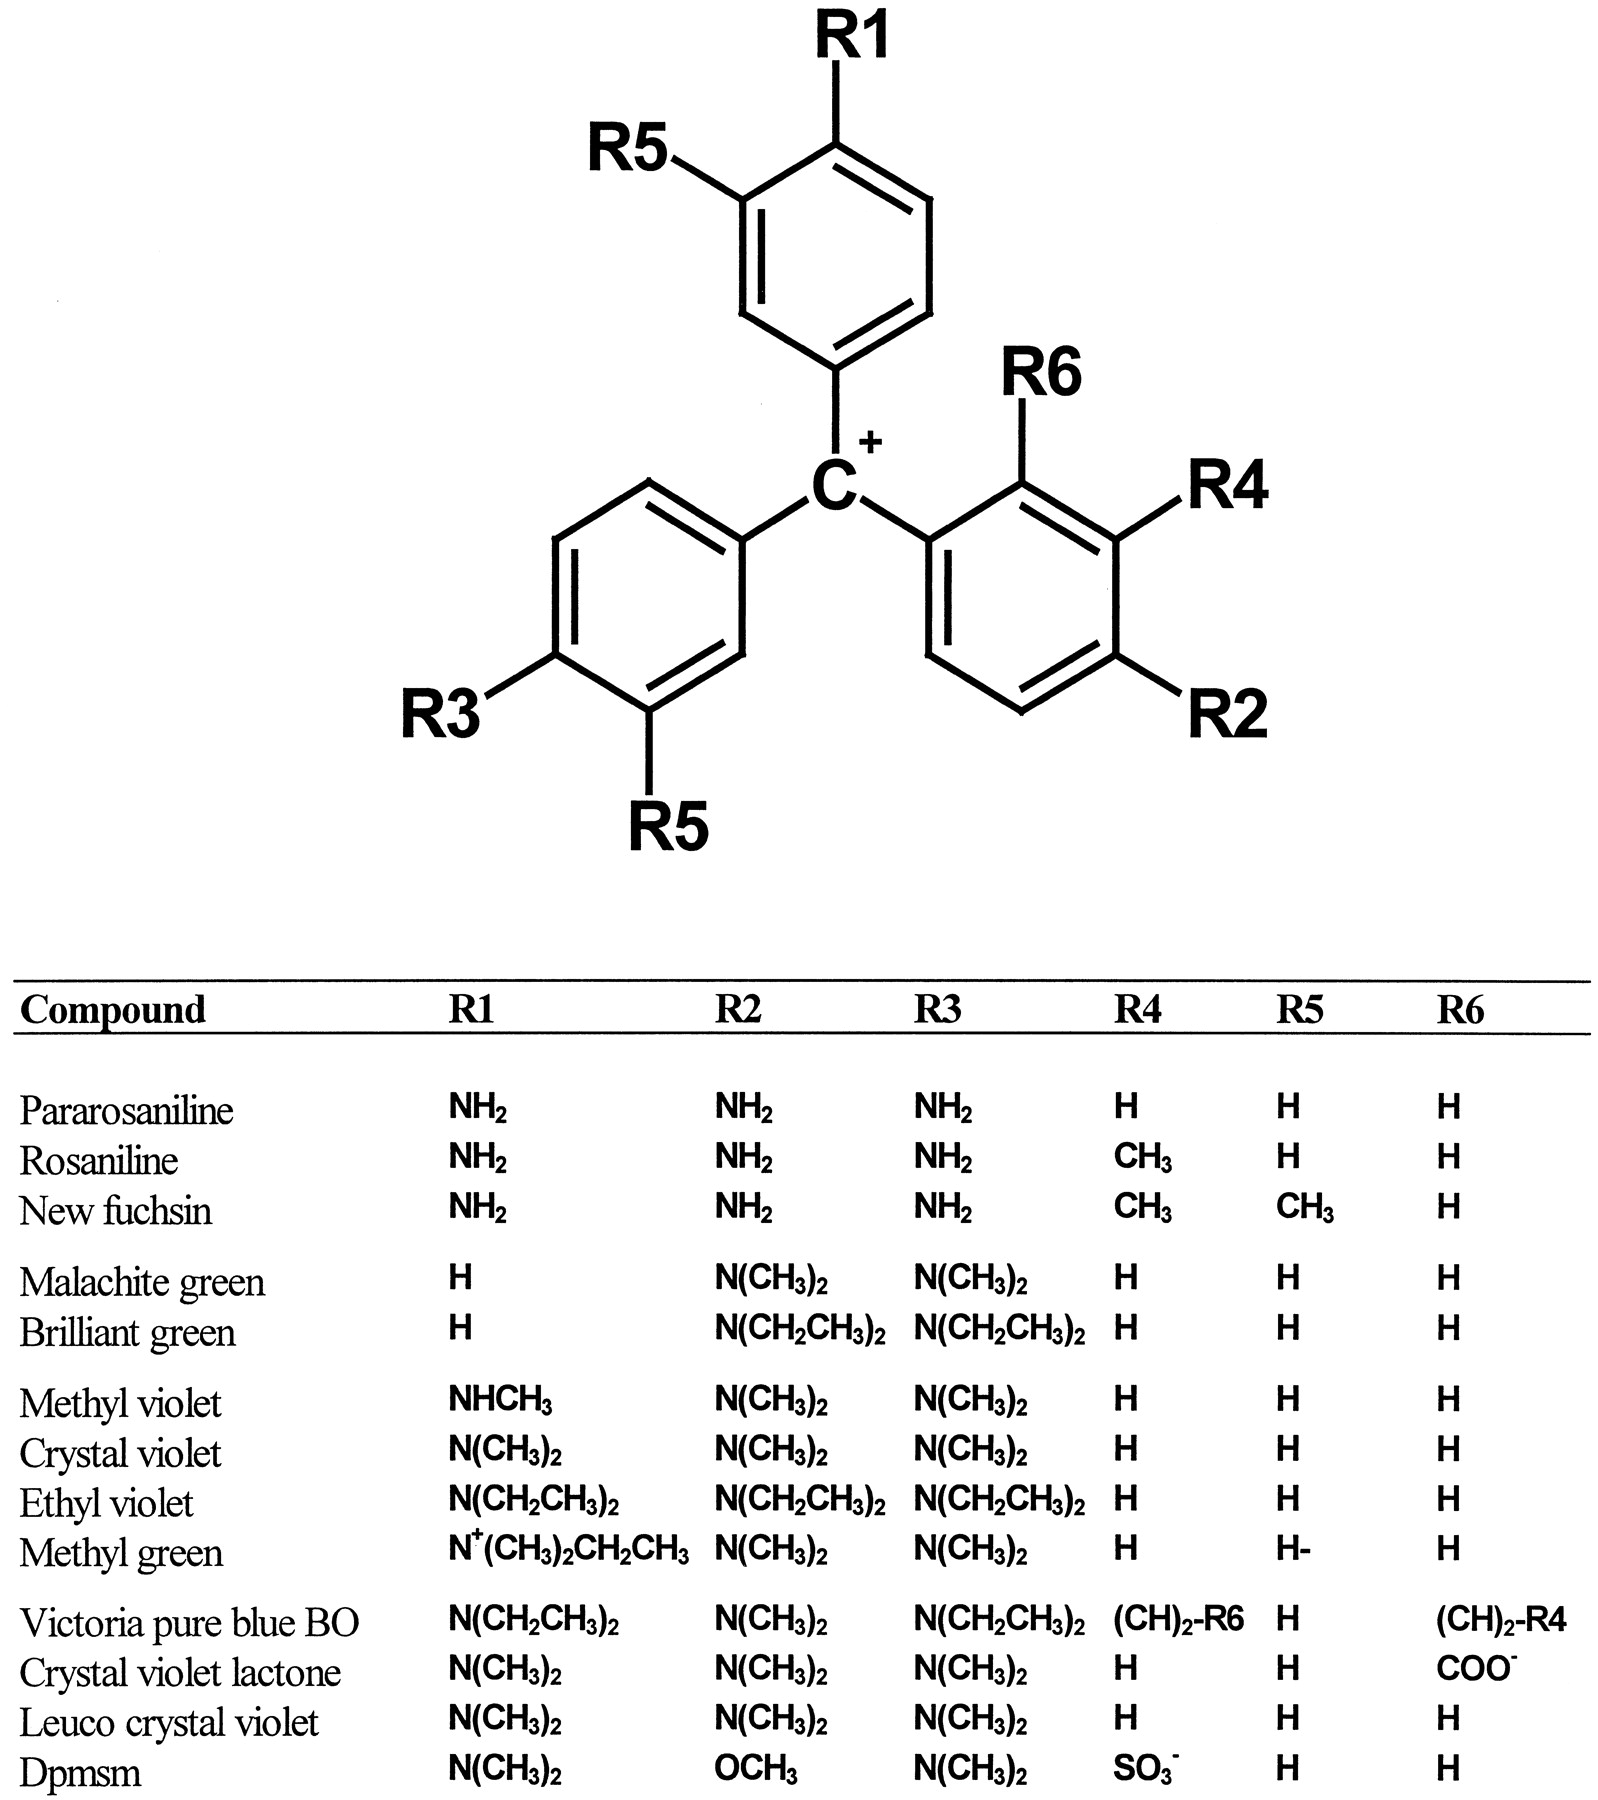 Aminotriarylmethane Dyes Are High-Affinity Noncompetitive